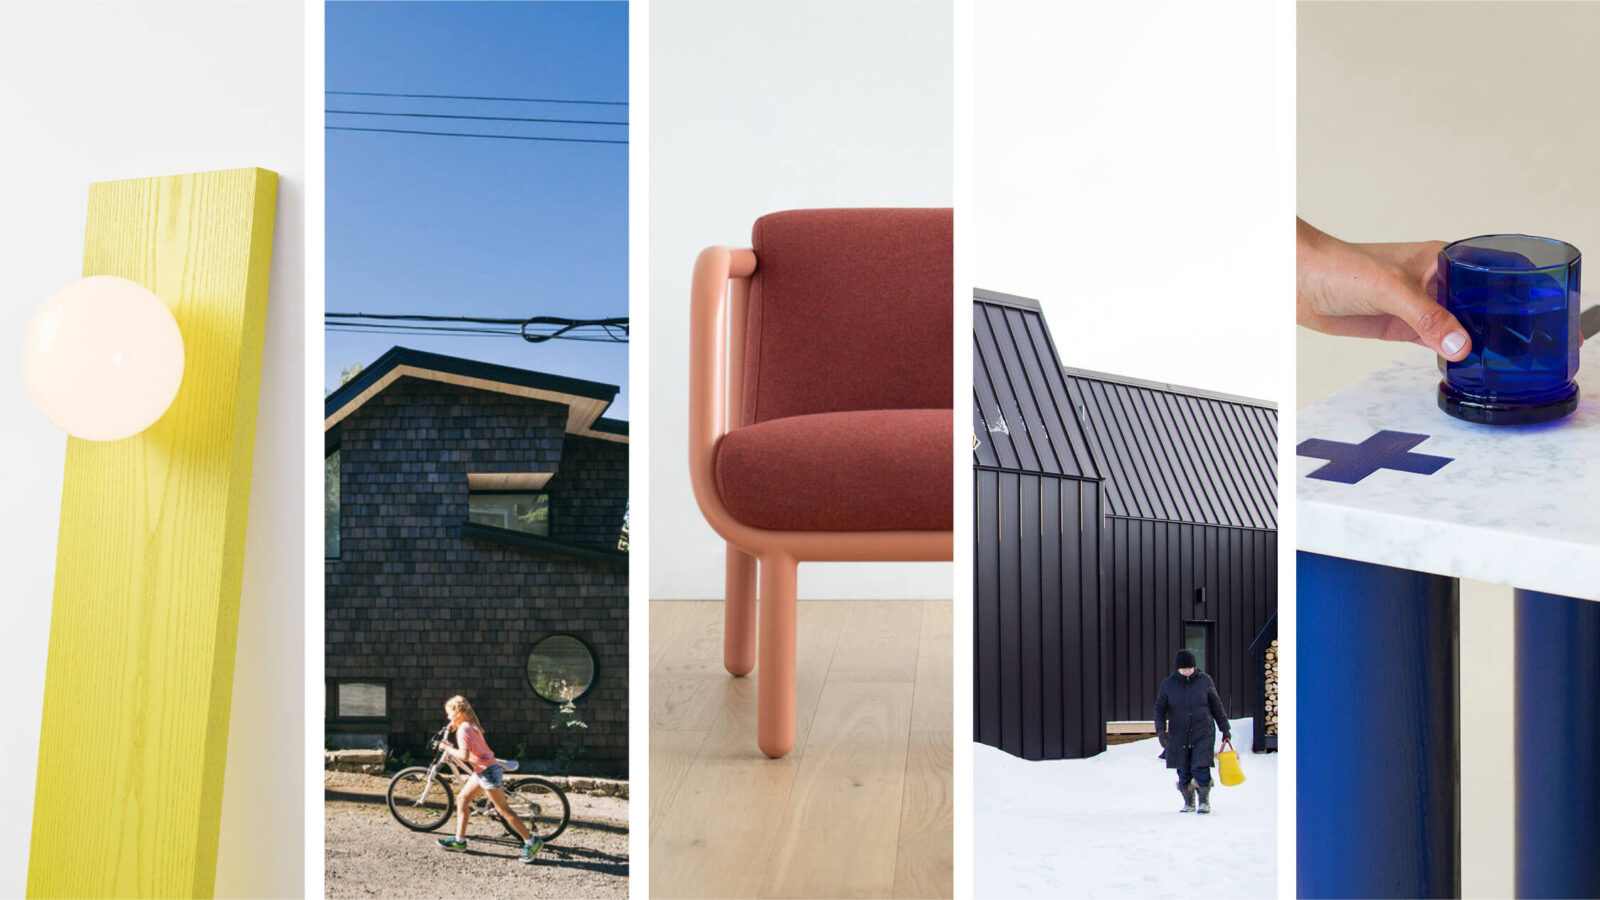 13 Canadian Designers to Watch